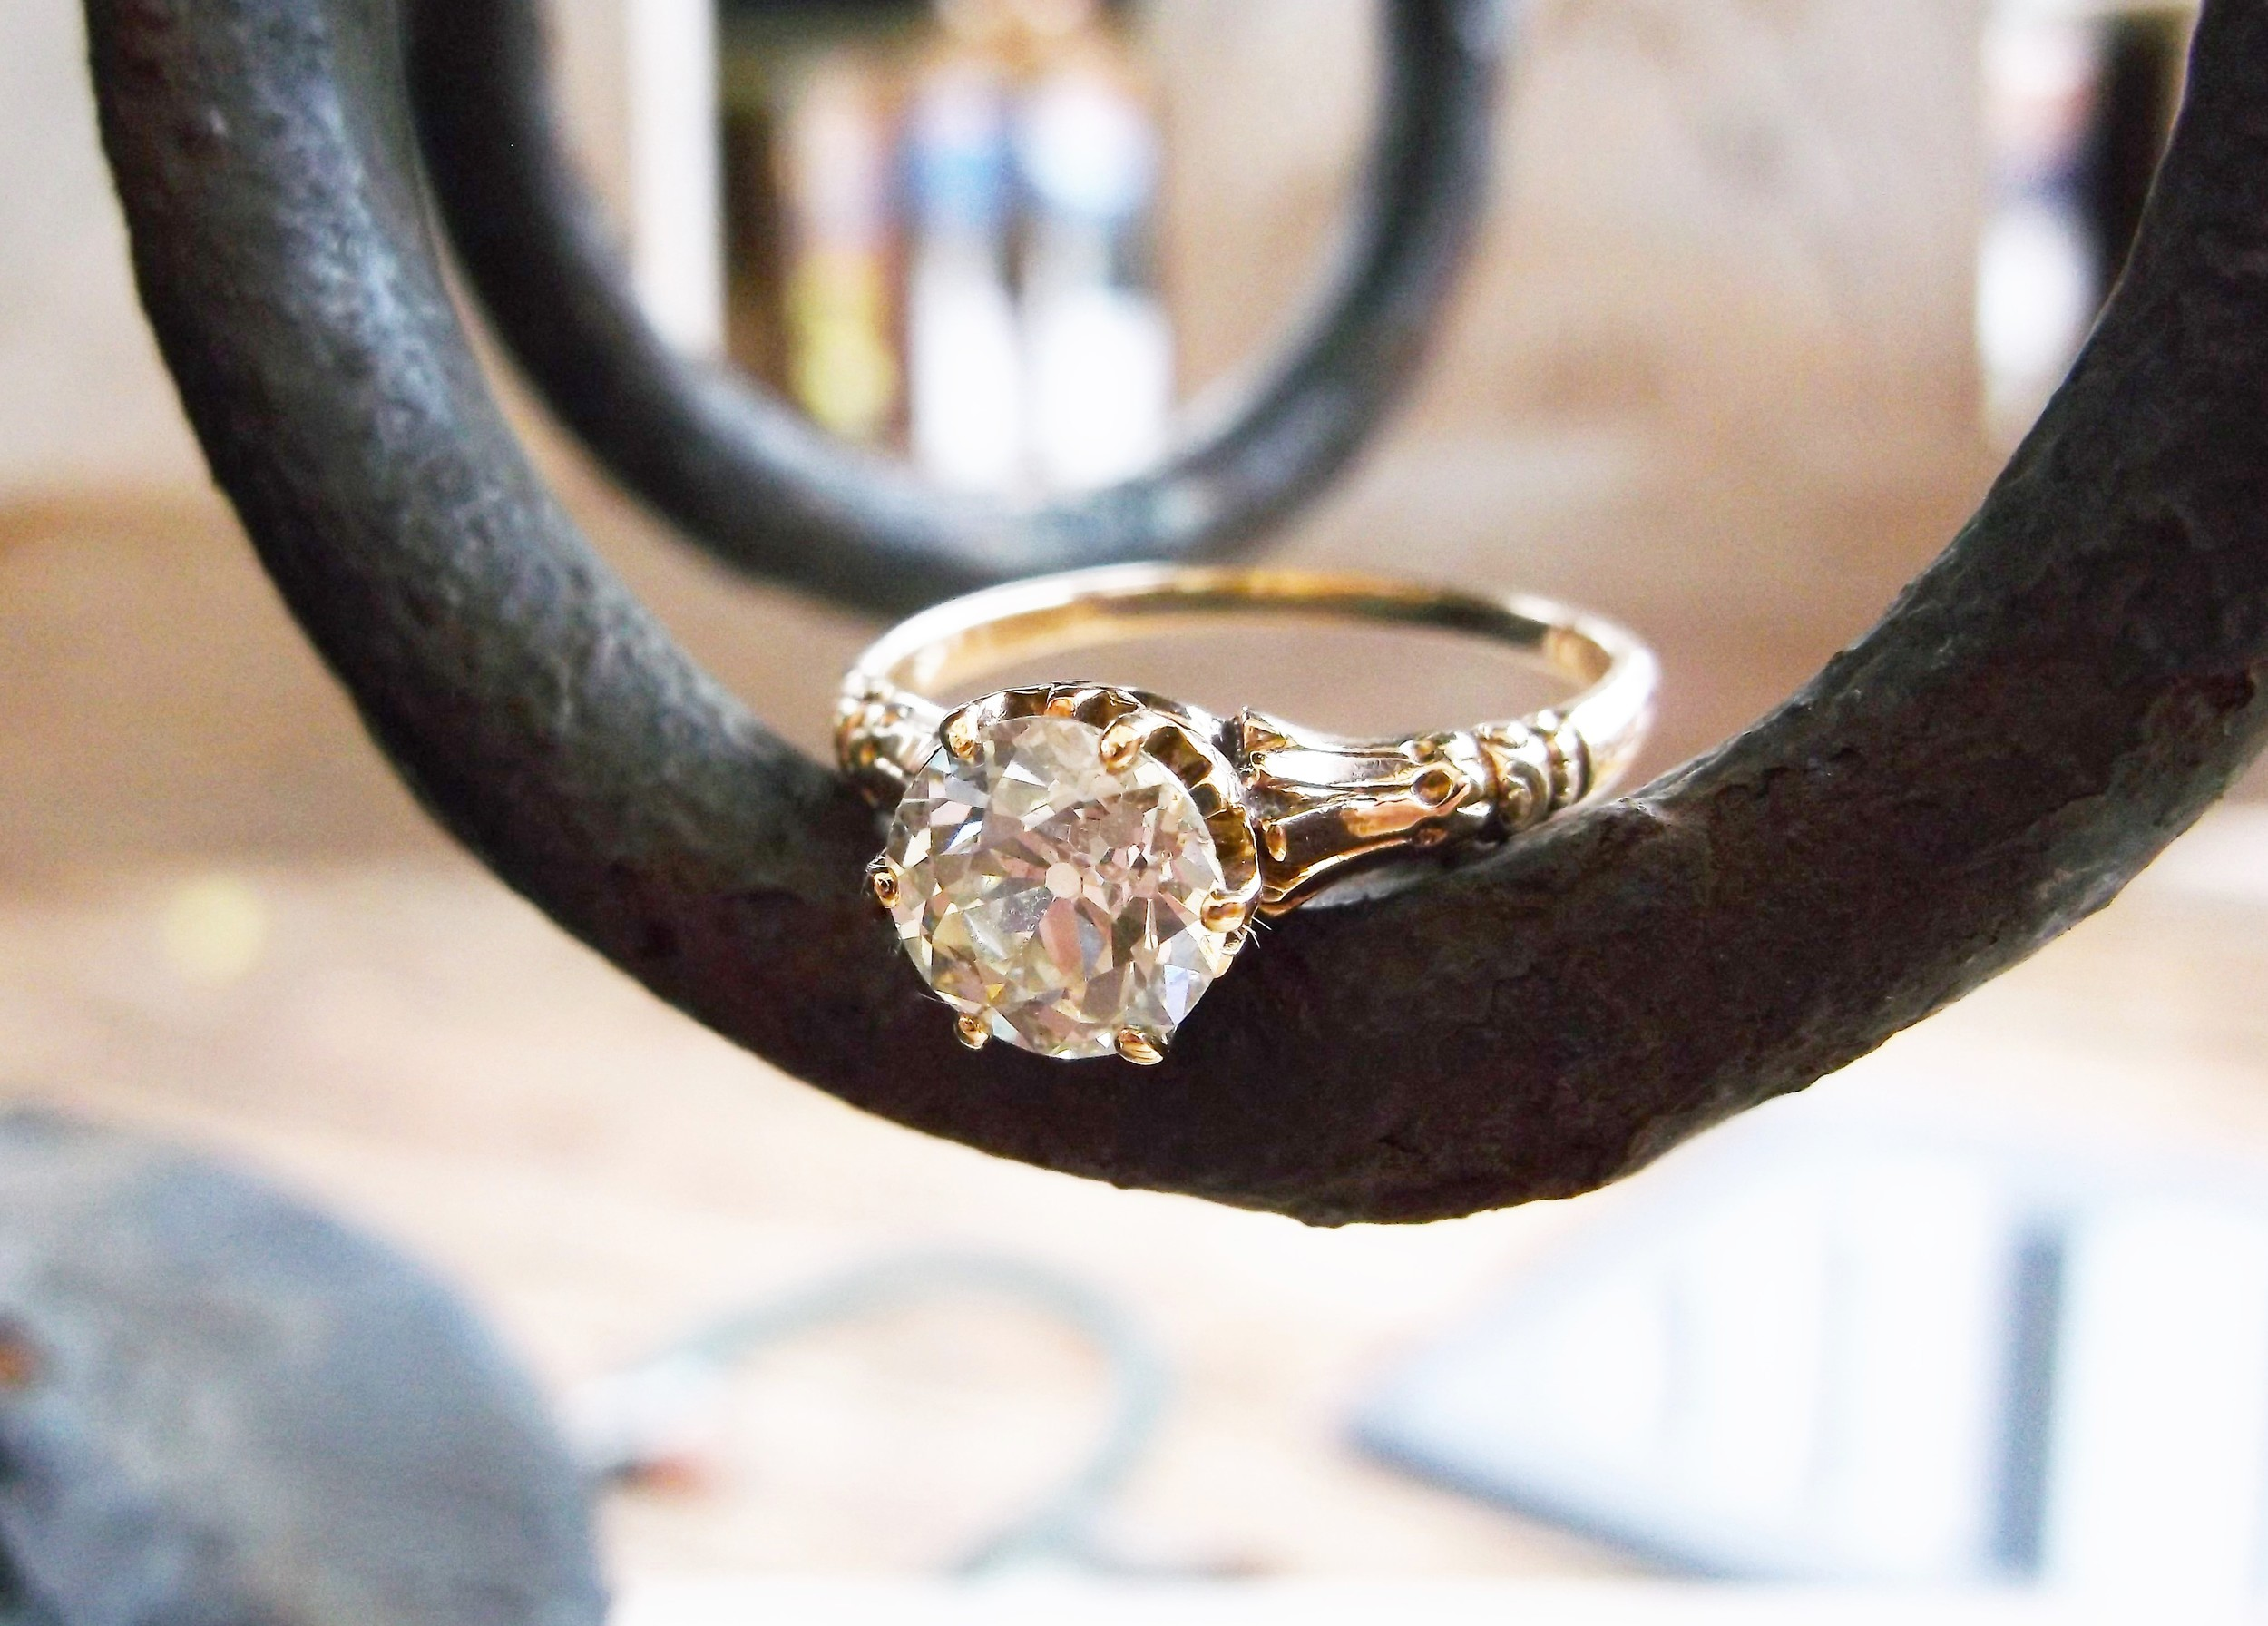 SOLD - Beautiful Victorian Era 1.29 carat Old European cut diamond set in a detailed yellow gold mounting.